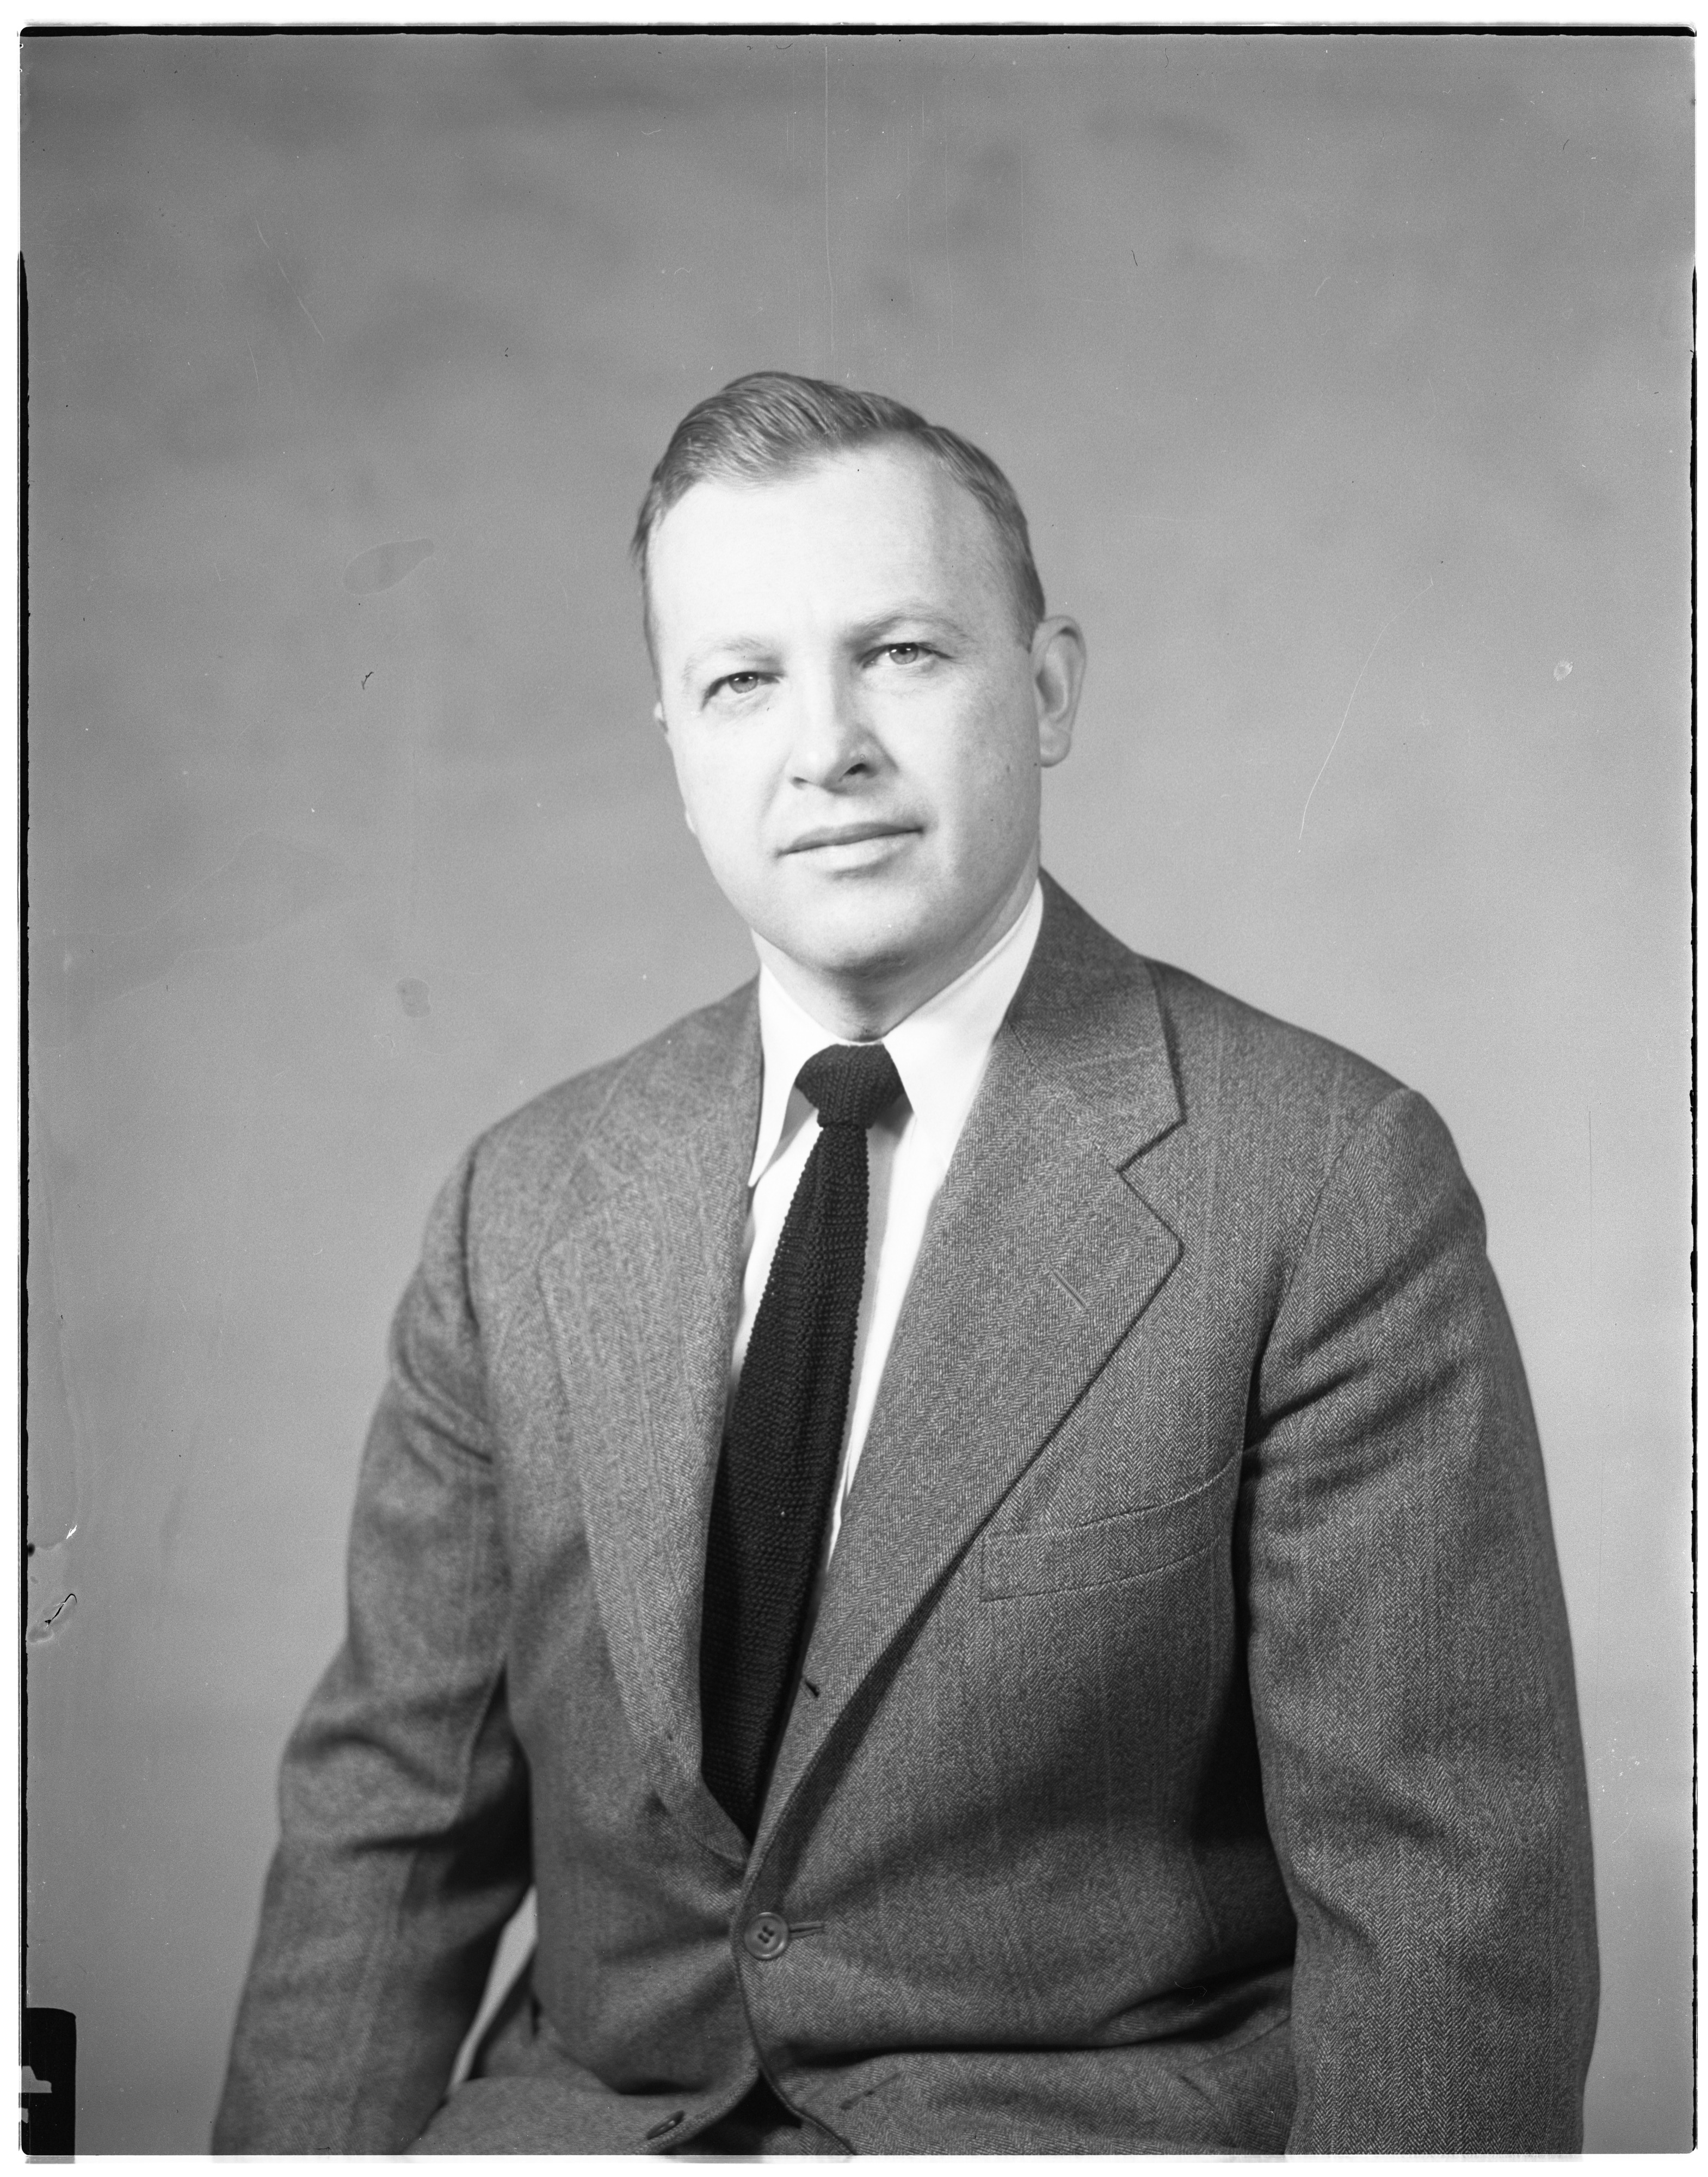 Portrait of Peter P. Darrow, March 1954 image